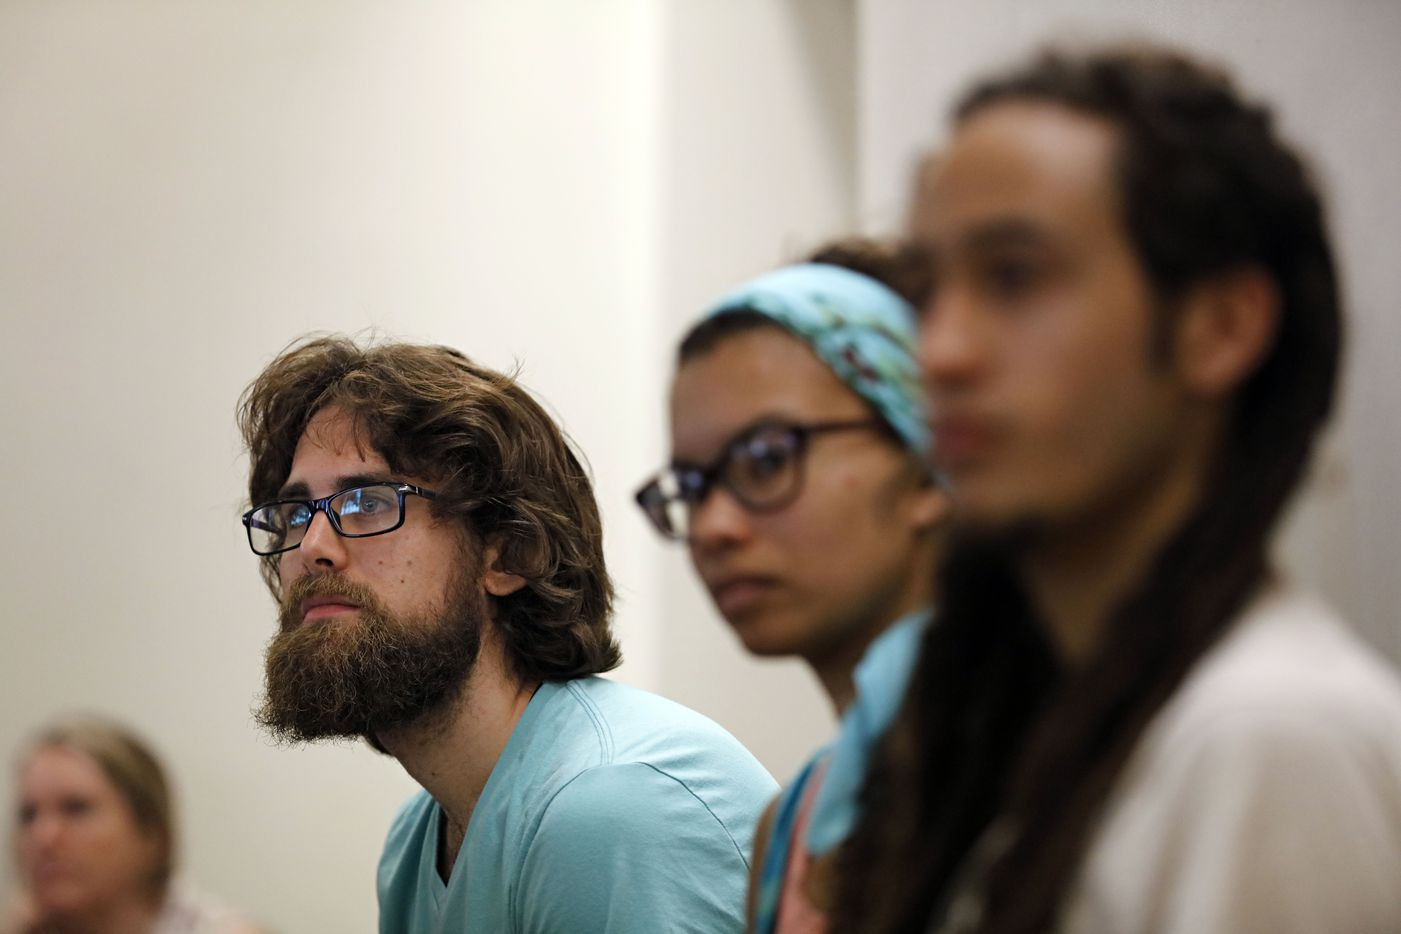 Patrick Moran of Abington Township, Pa., listens to a lecture on community organizing during the People's Convention.